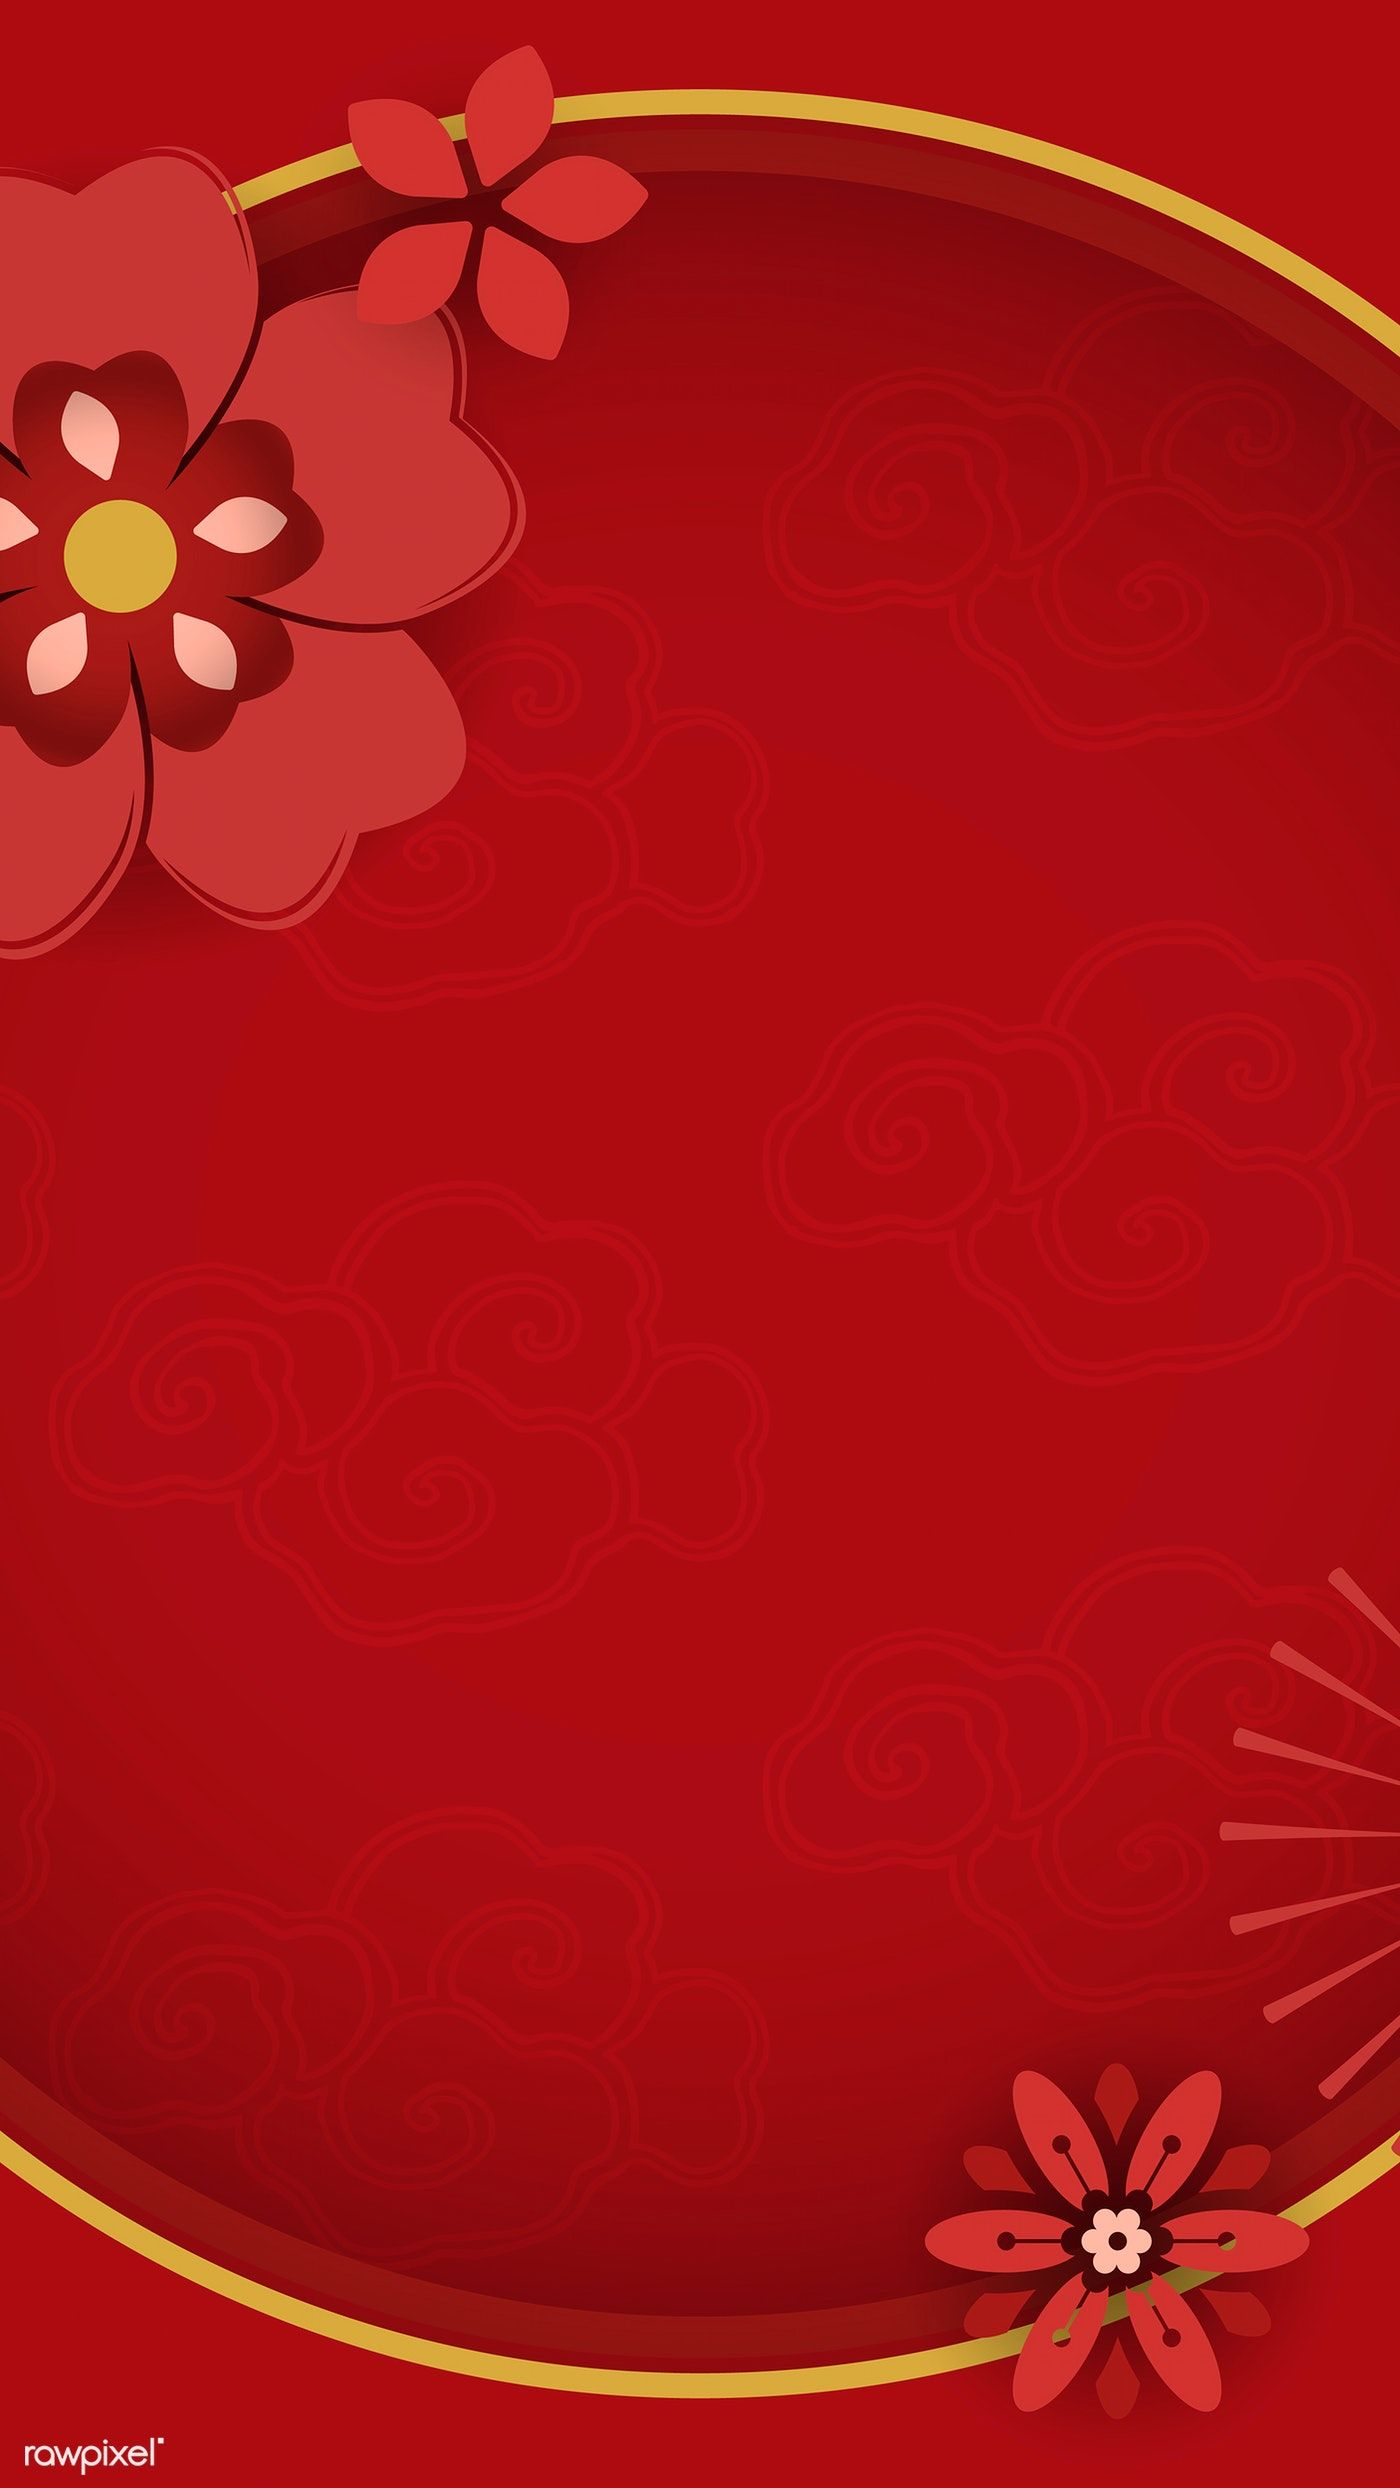 Download Premium Vector Of Happy Chinese New Year 2020 Phone Background In 2020 Chinese New Year Background Chinese New Year 2020 Happy Chinese New Year